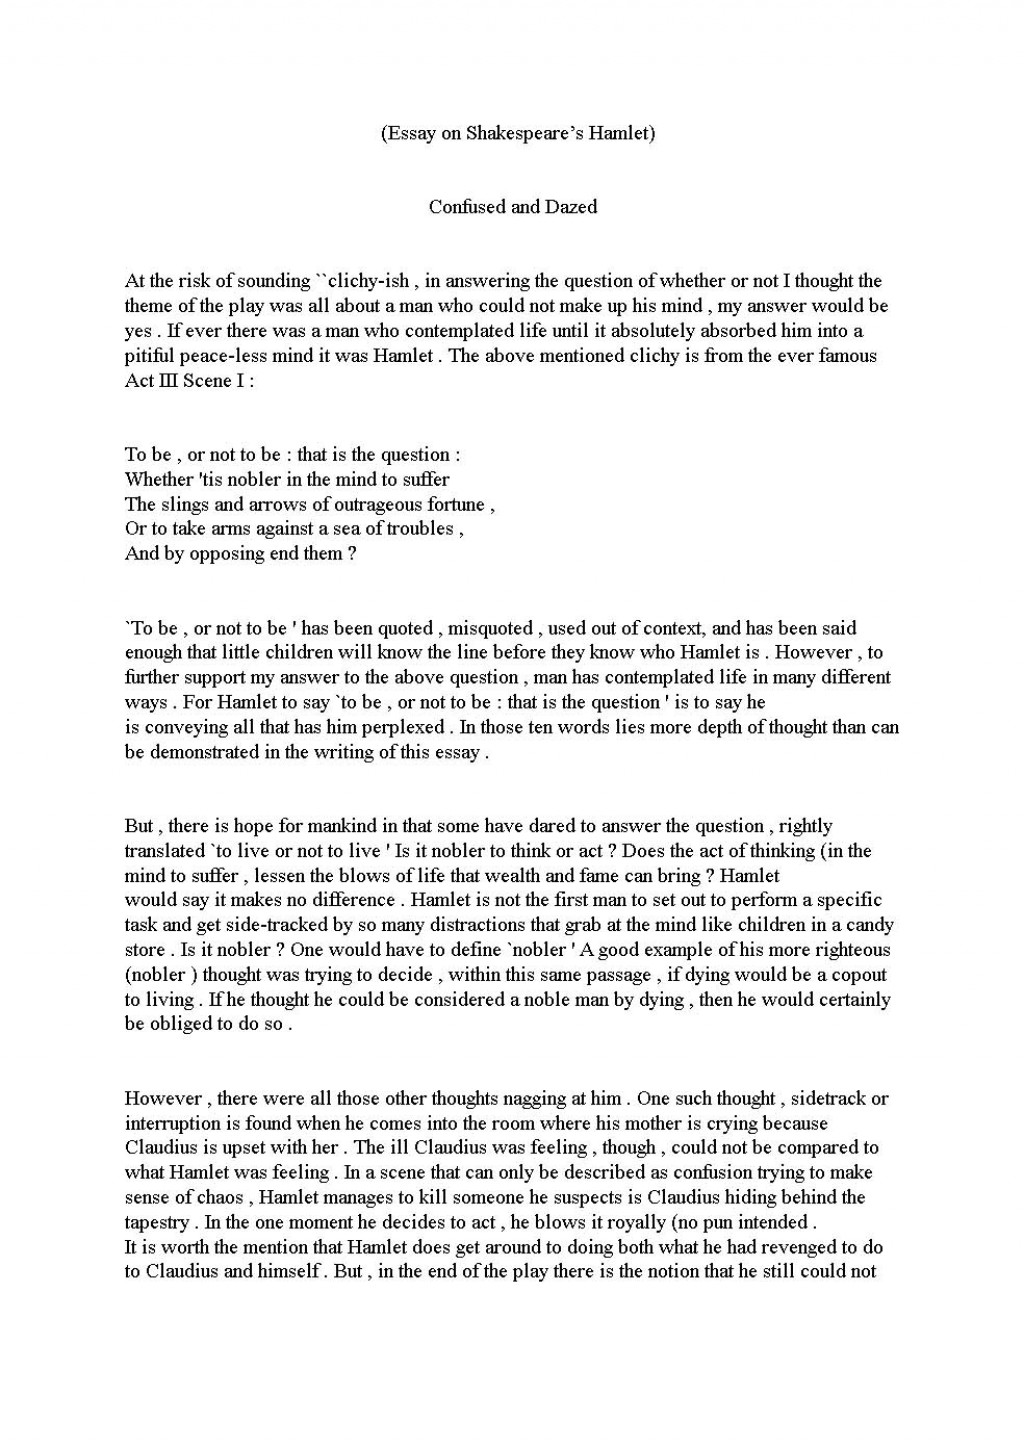 005 Public Speaking Essay Stunning Topics Example Introduction Large